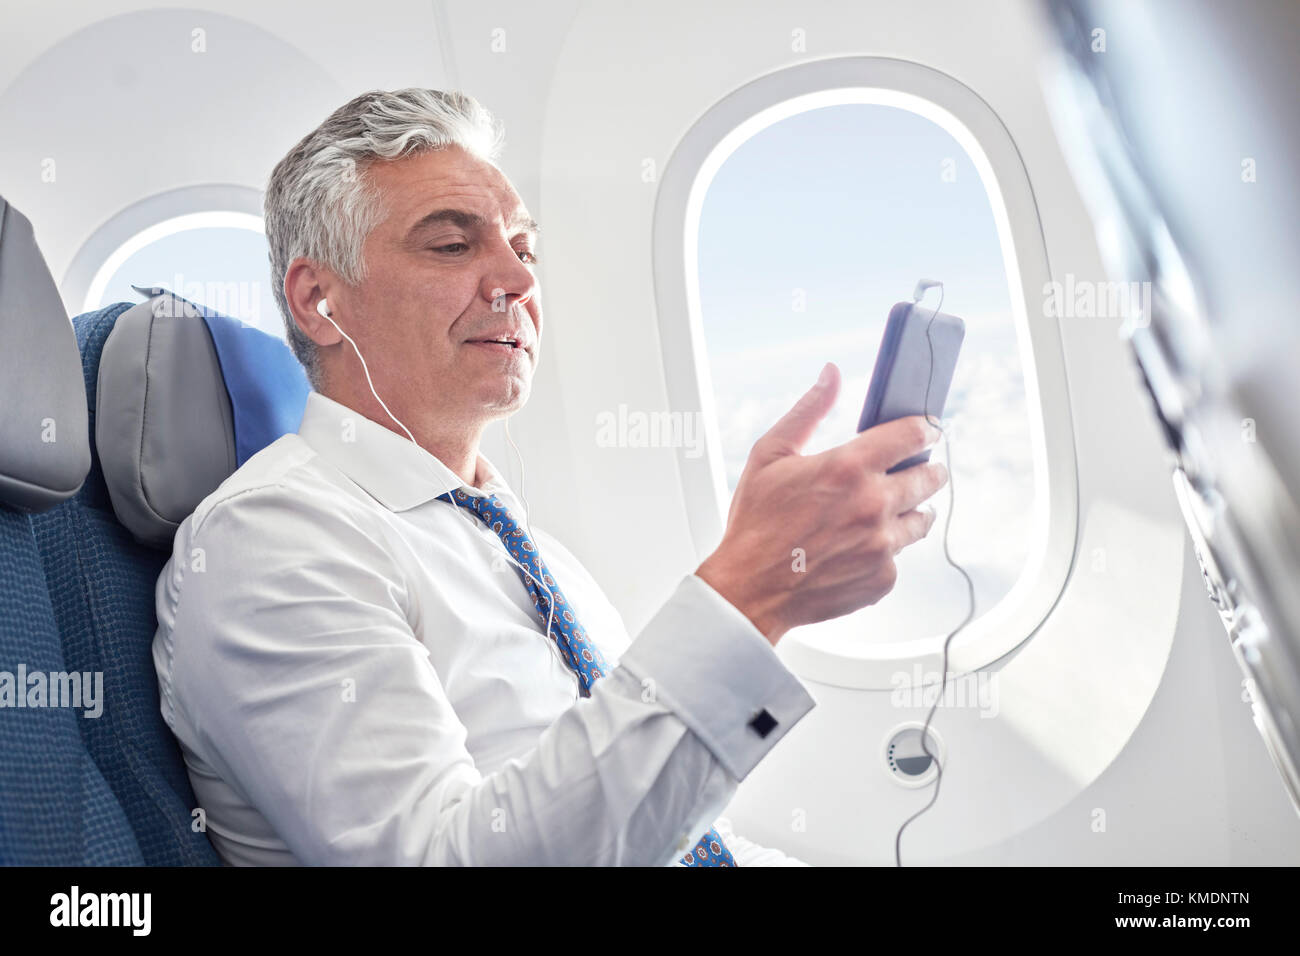 Businessman listening to music with headphones and mp3 player on airplane - Stock Image